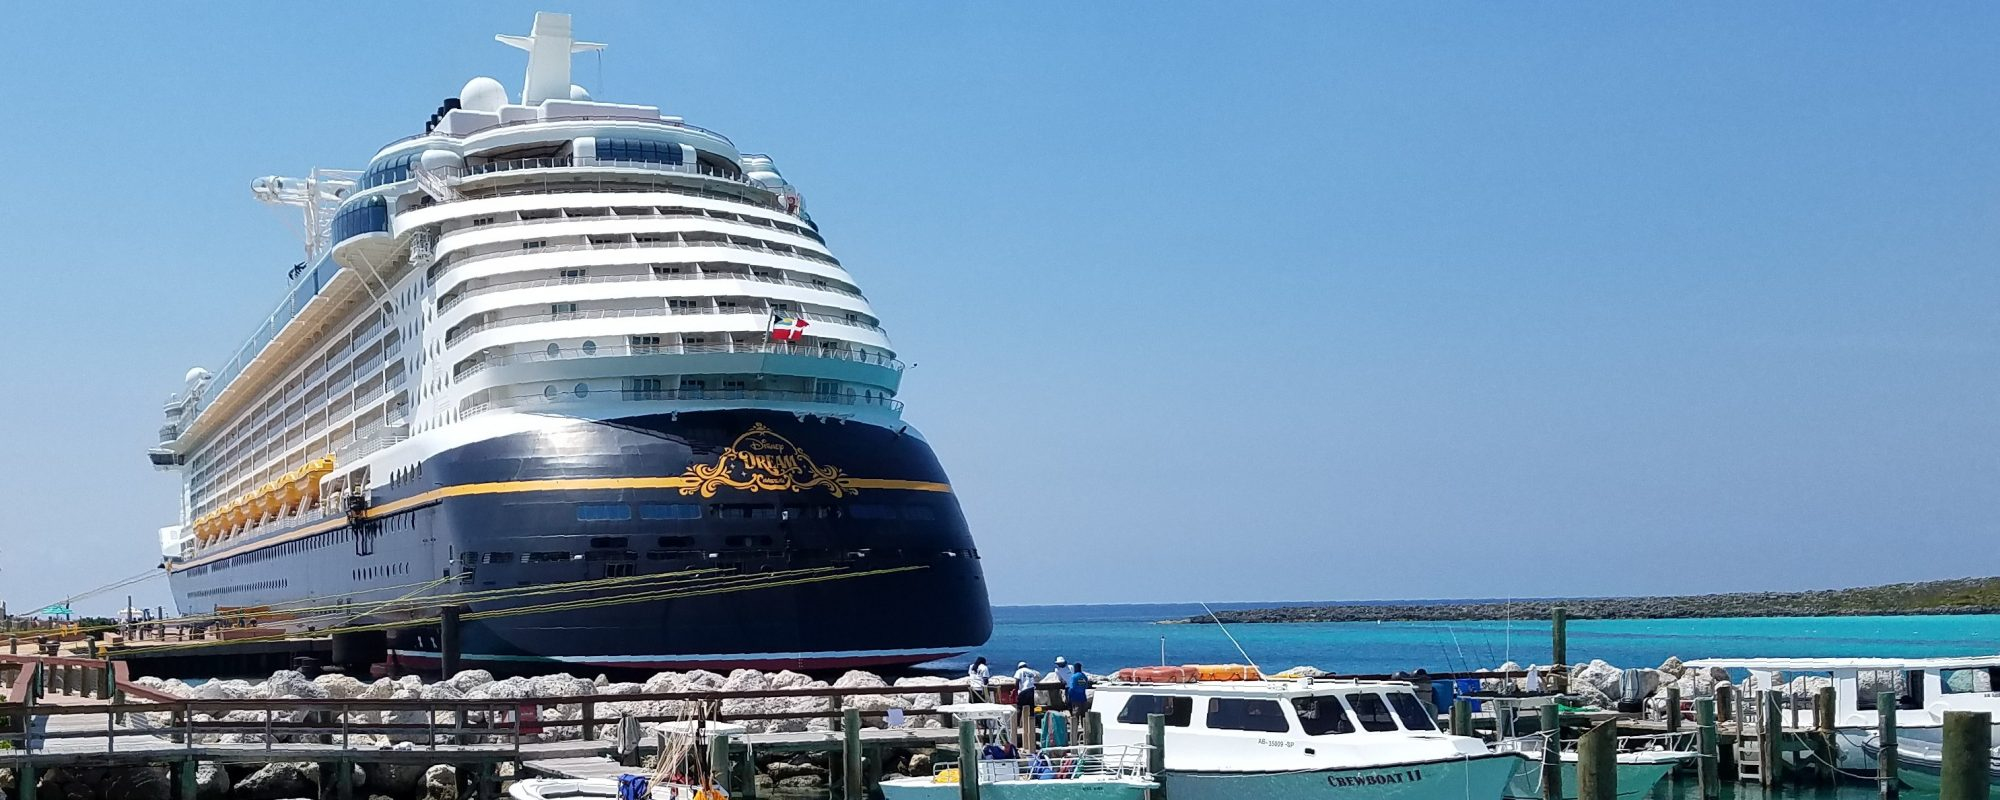 Is A Disney Cruise Worth Twice As Much As A Royal